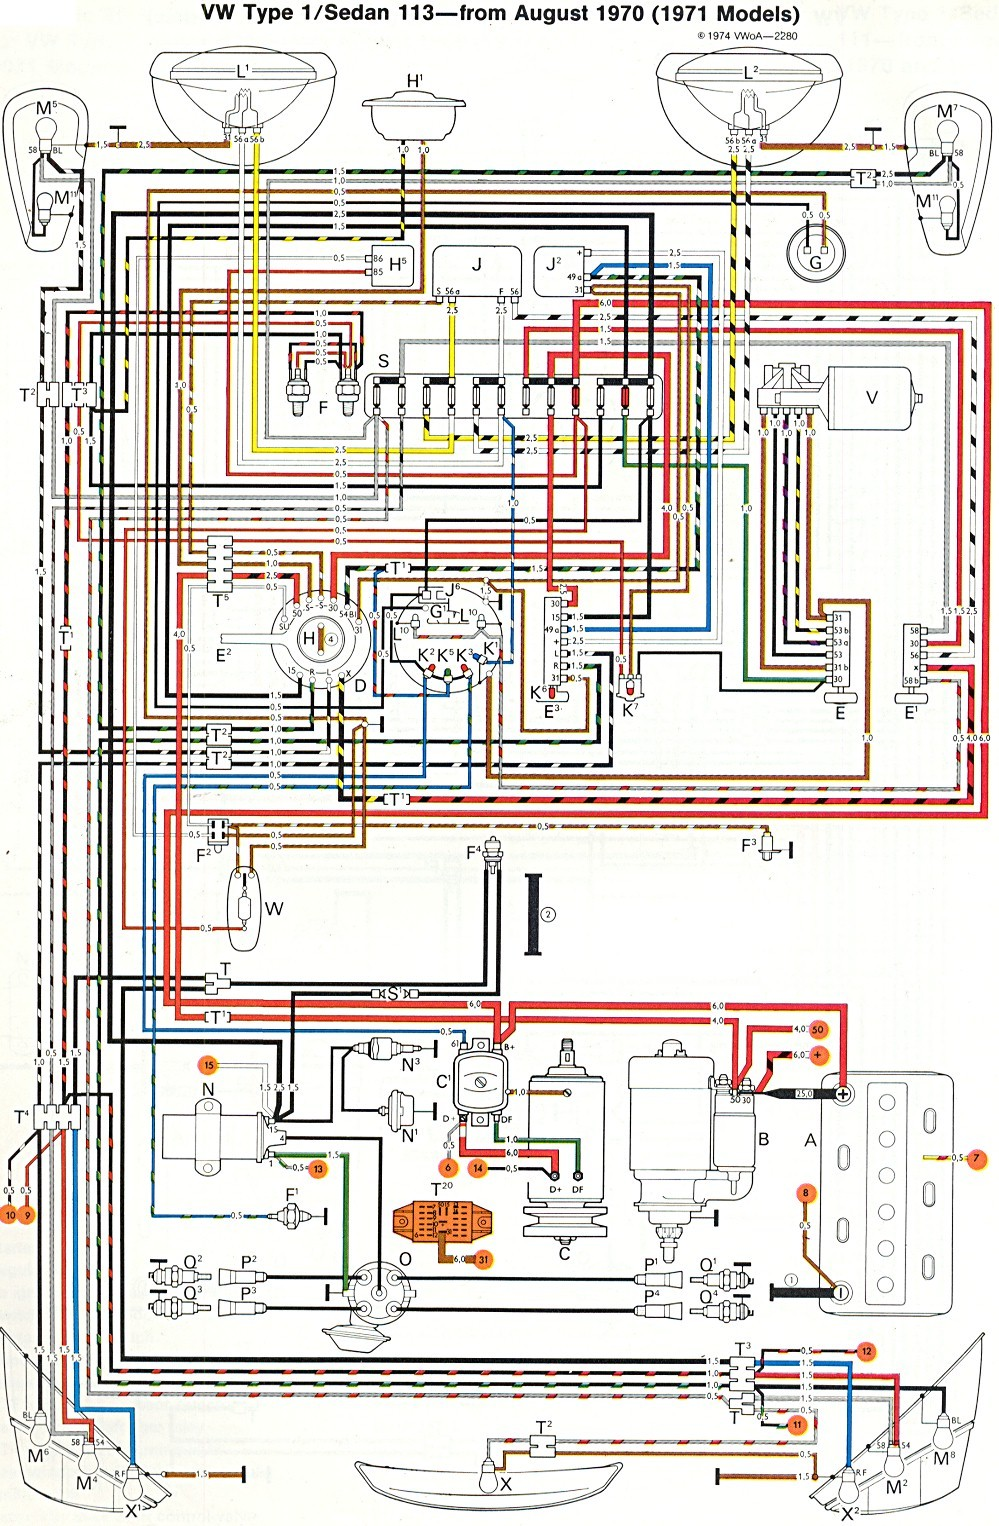 hight resolution of vw wiring diagram wiring diagram image rh mainetreasurechest com 1973 vw beetle engine